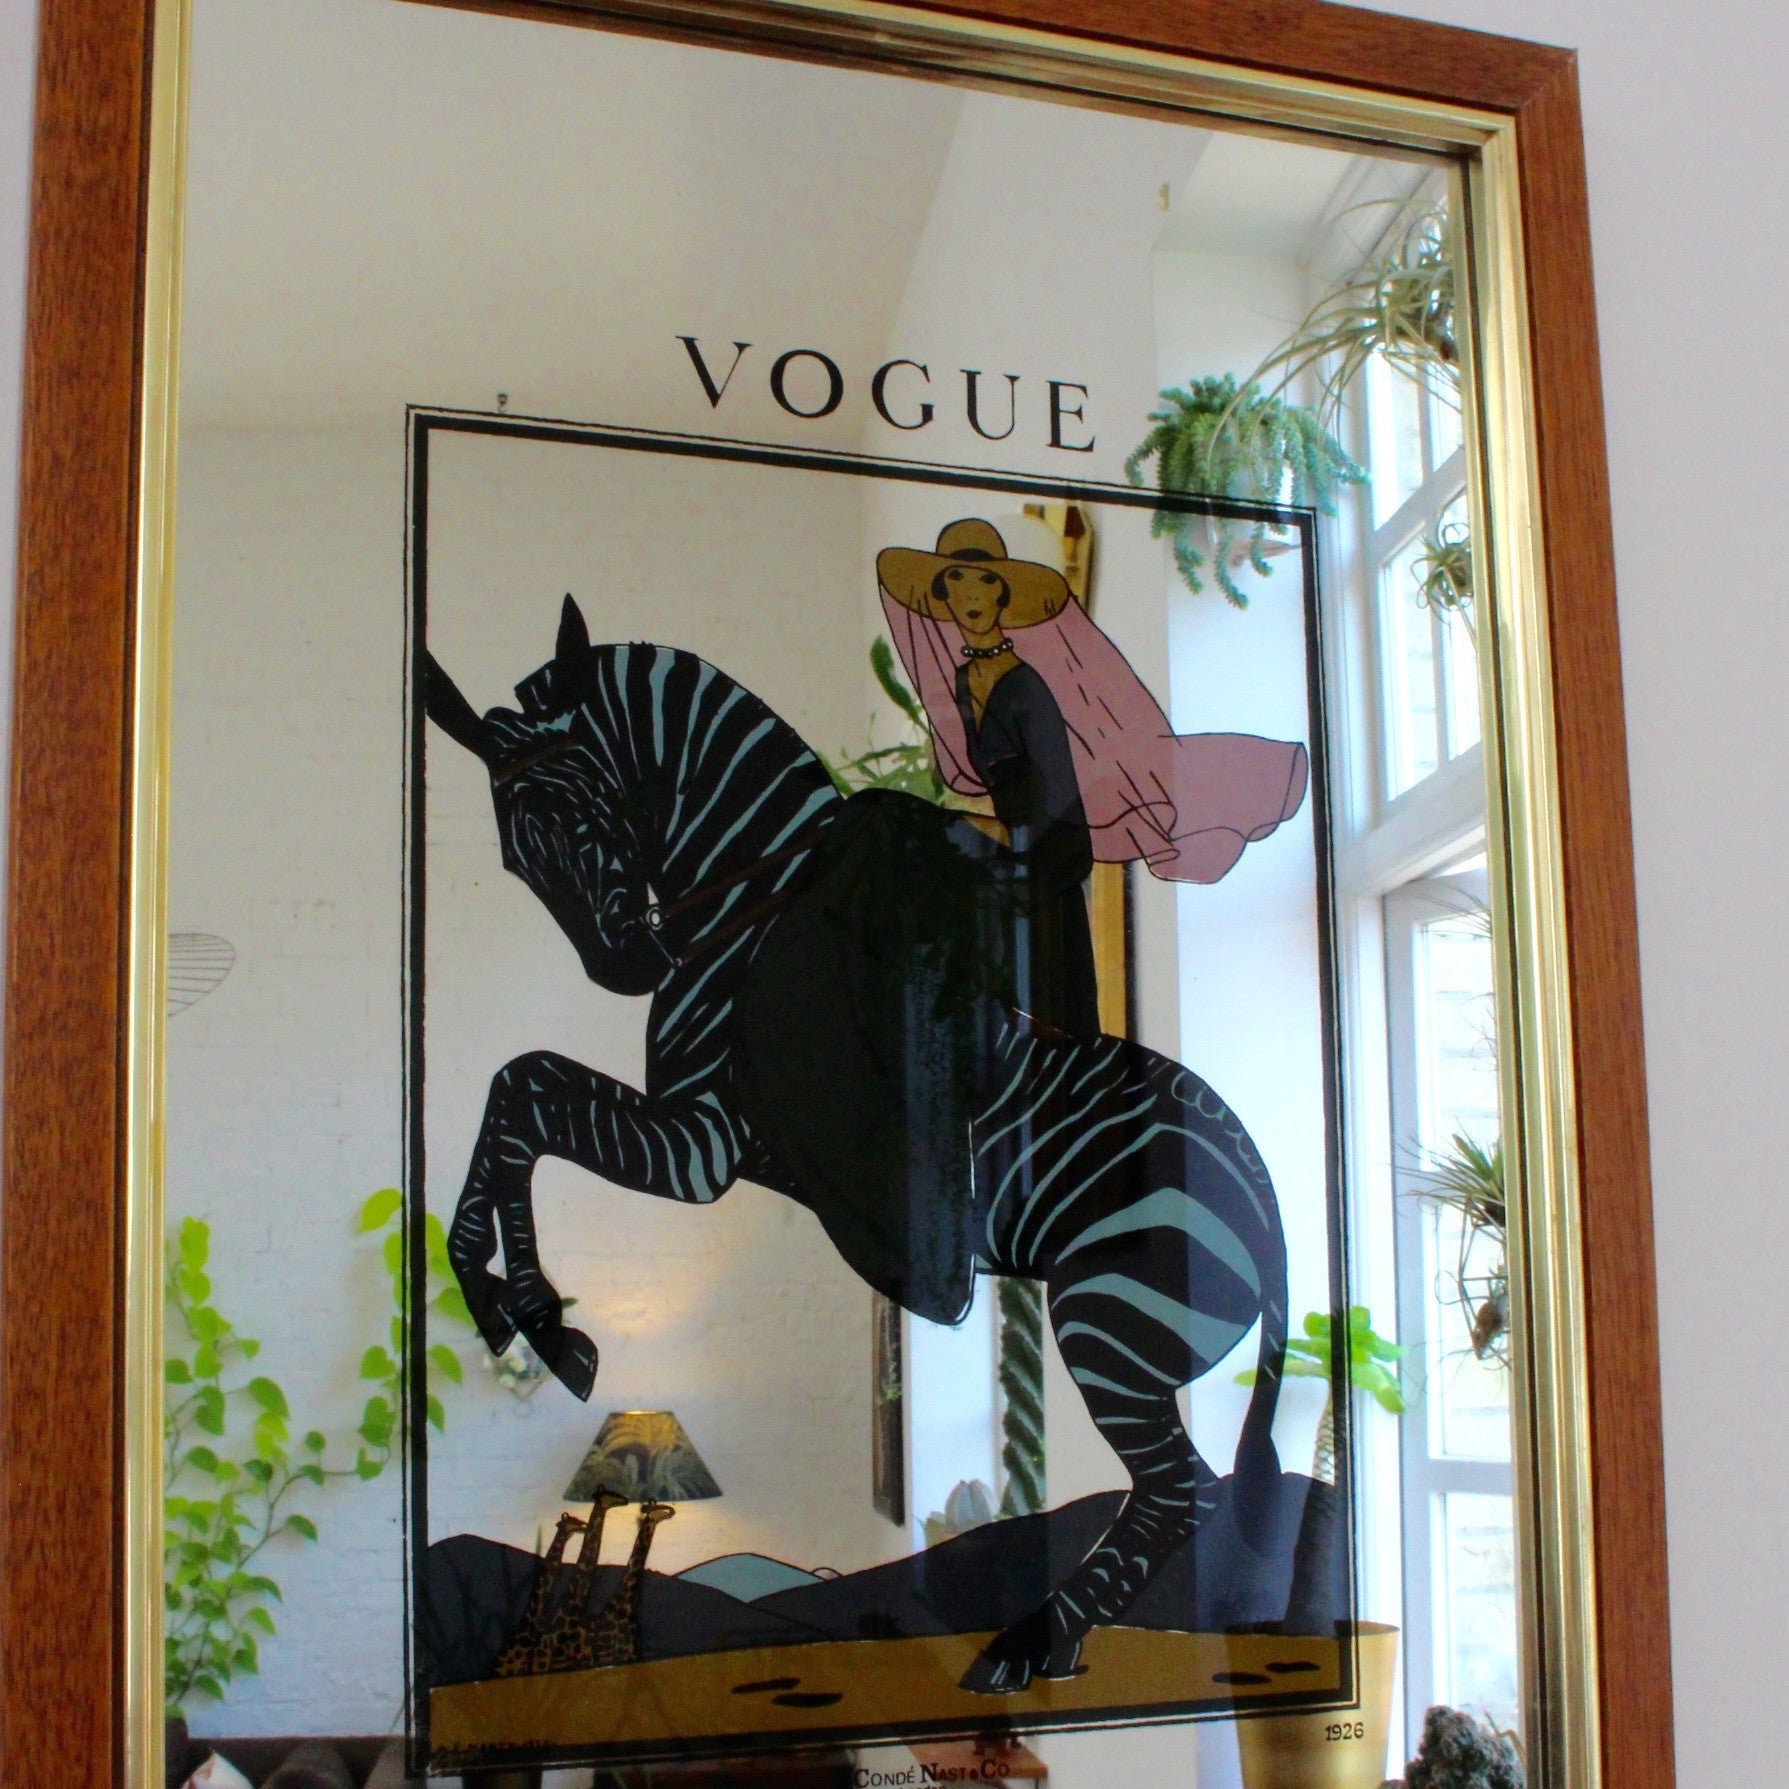 Vogue Magazine Cover Art Deco Mirror (c. 1980s)